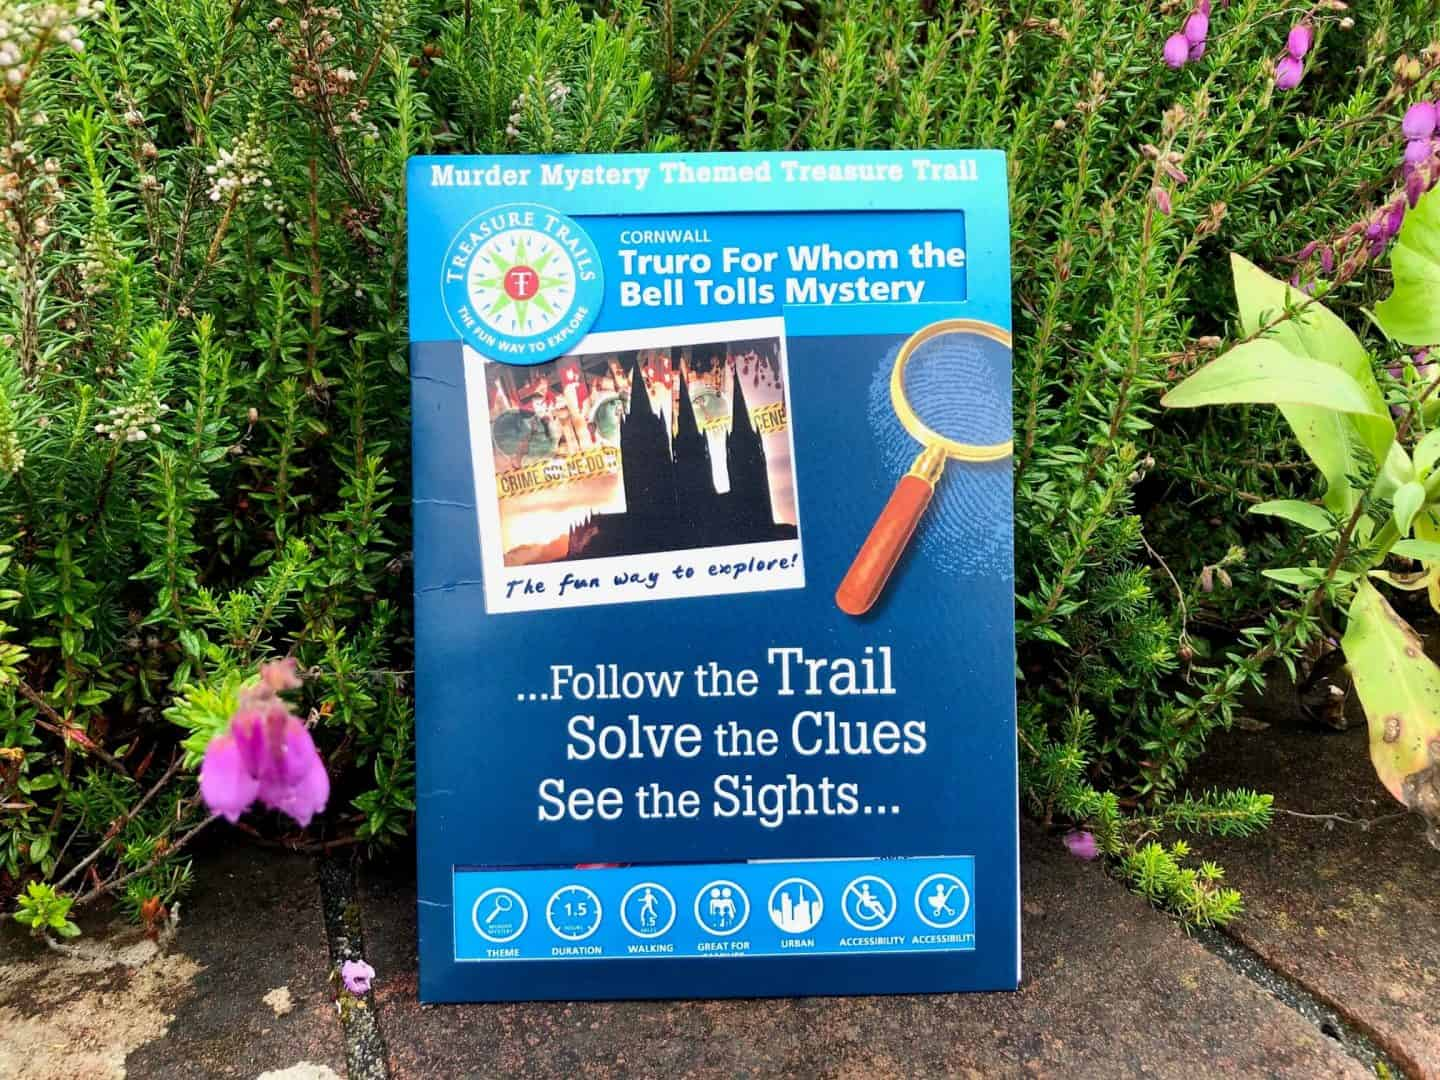 Exploring Truro With Treasure Trails - Review